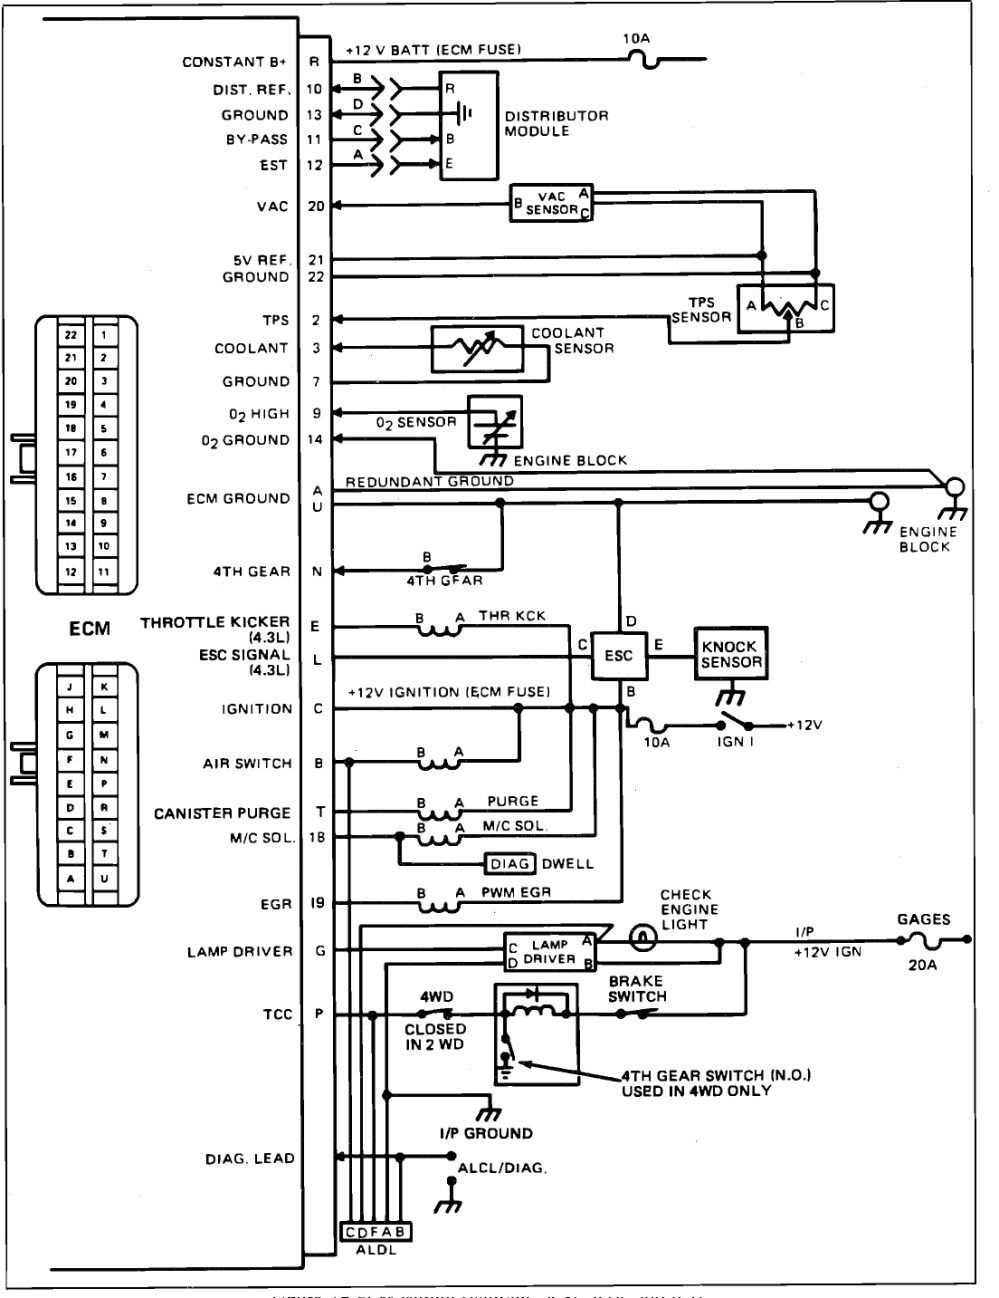 medium resolution of 1995 chevy g20 fuse box wiring diagram schematics mercedes benz e350 fuse box 89 g20